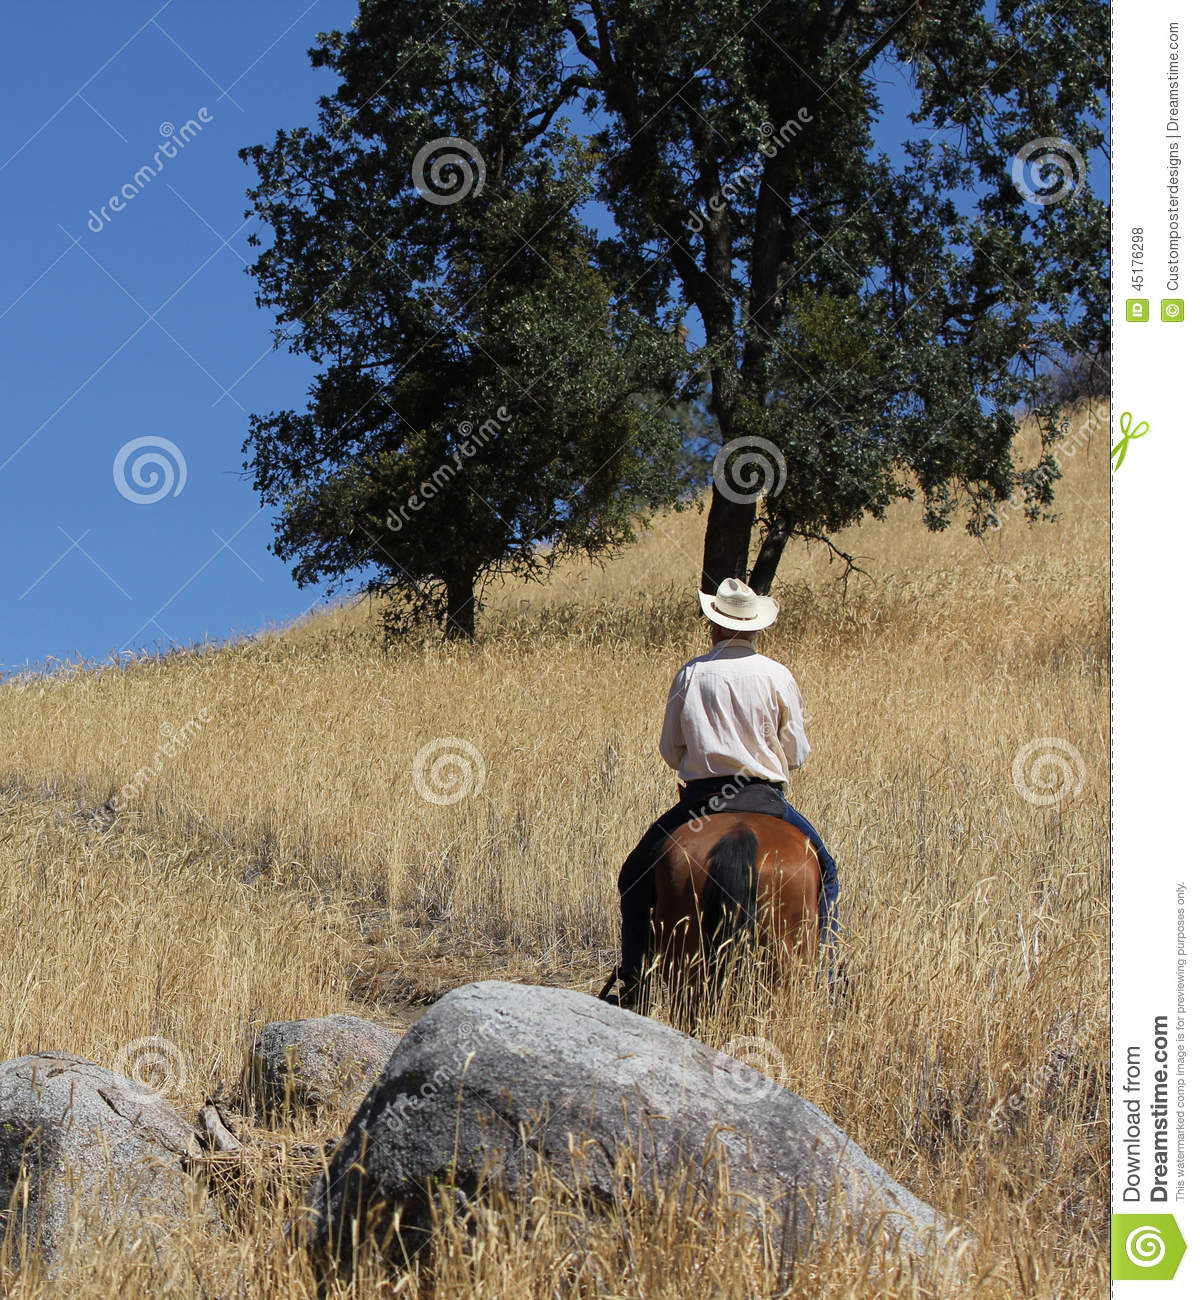 Download A Cowboy Riding In A Field With Trees Up A Mountain Trail Stock Photo - Image of cowboy, activity: 45176298